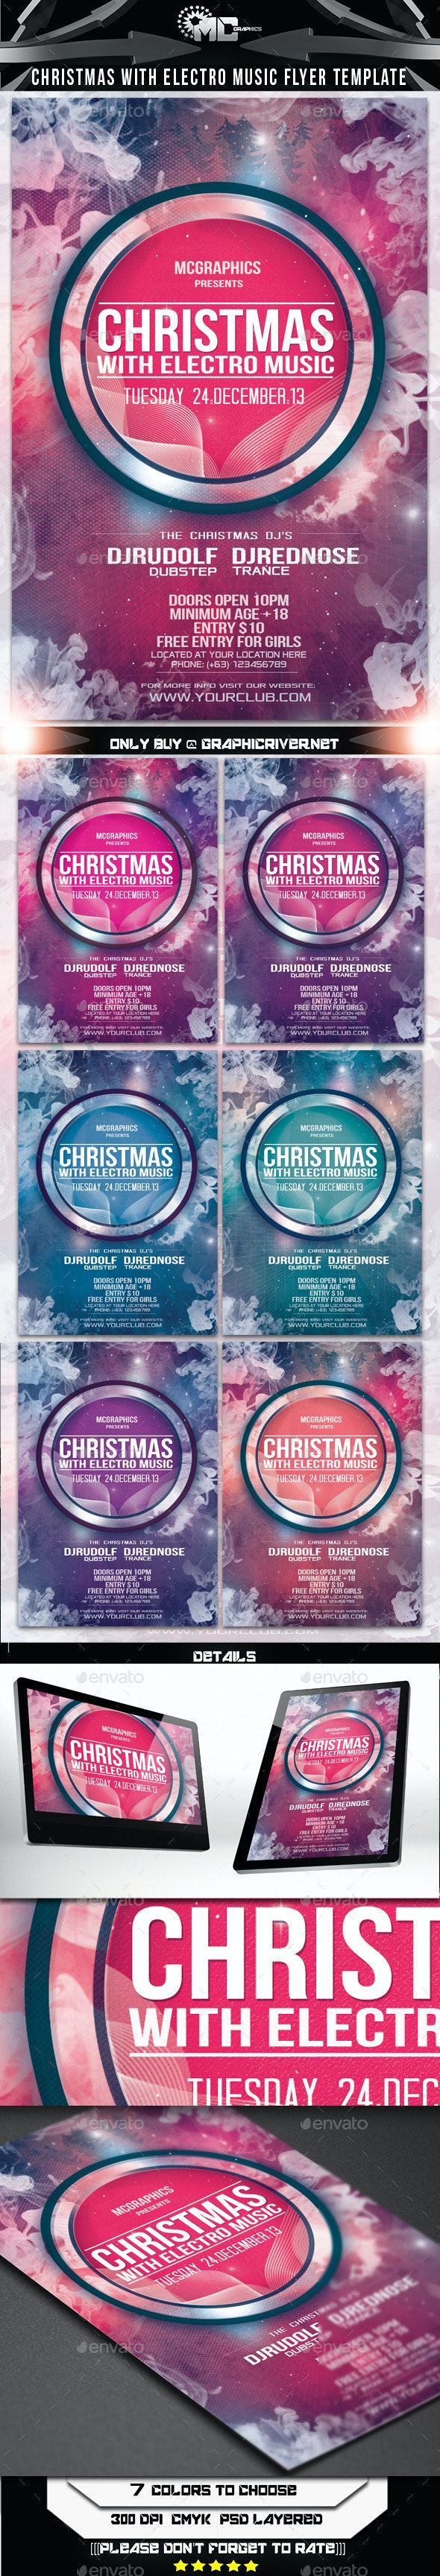 Christmas With Electro Music Flyer Template - Events Flyers